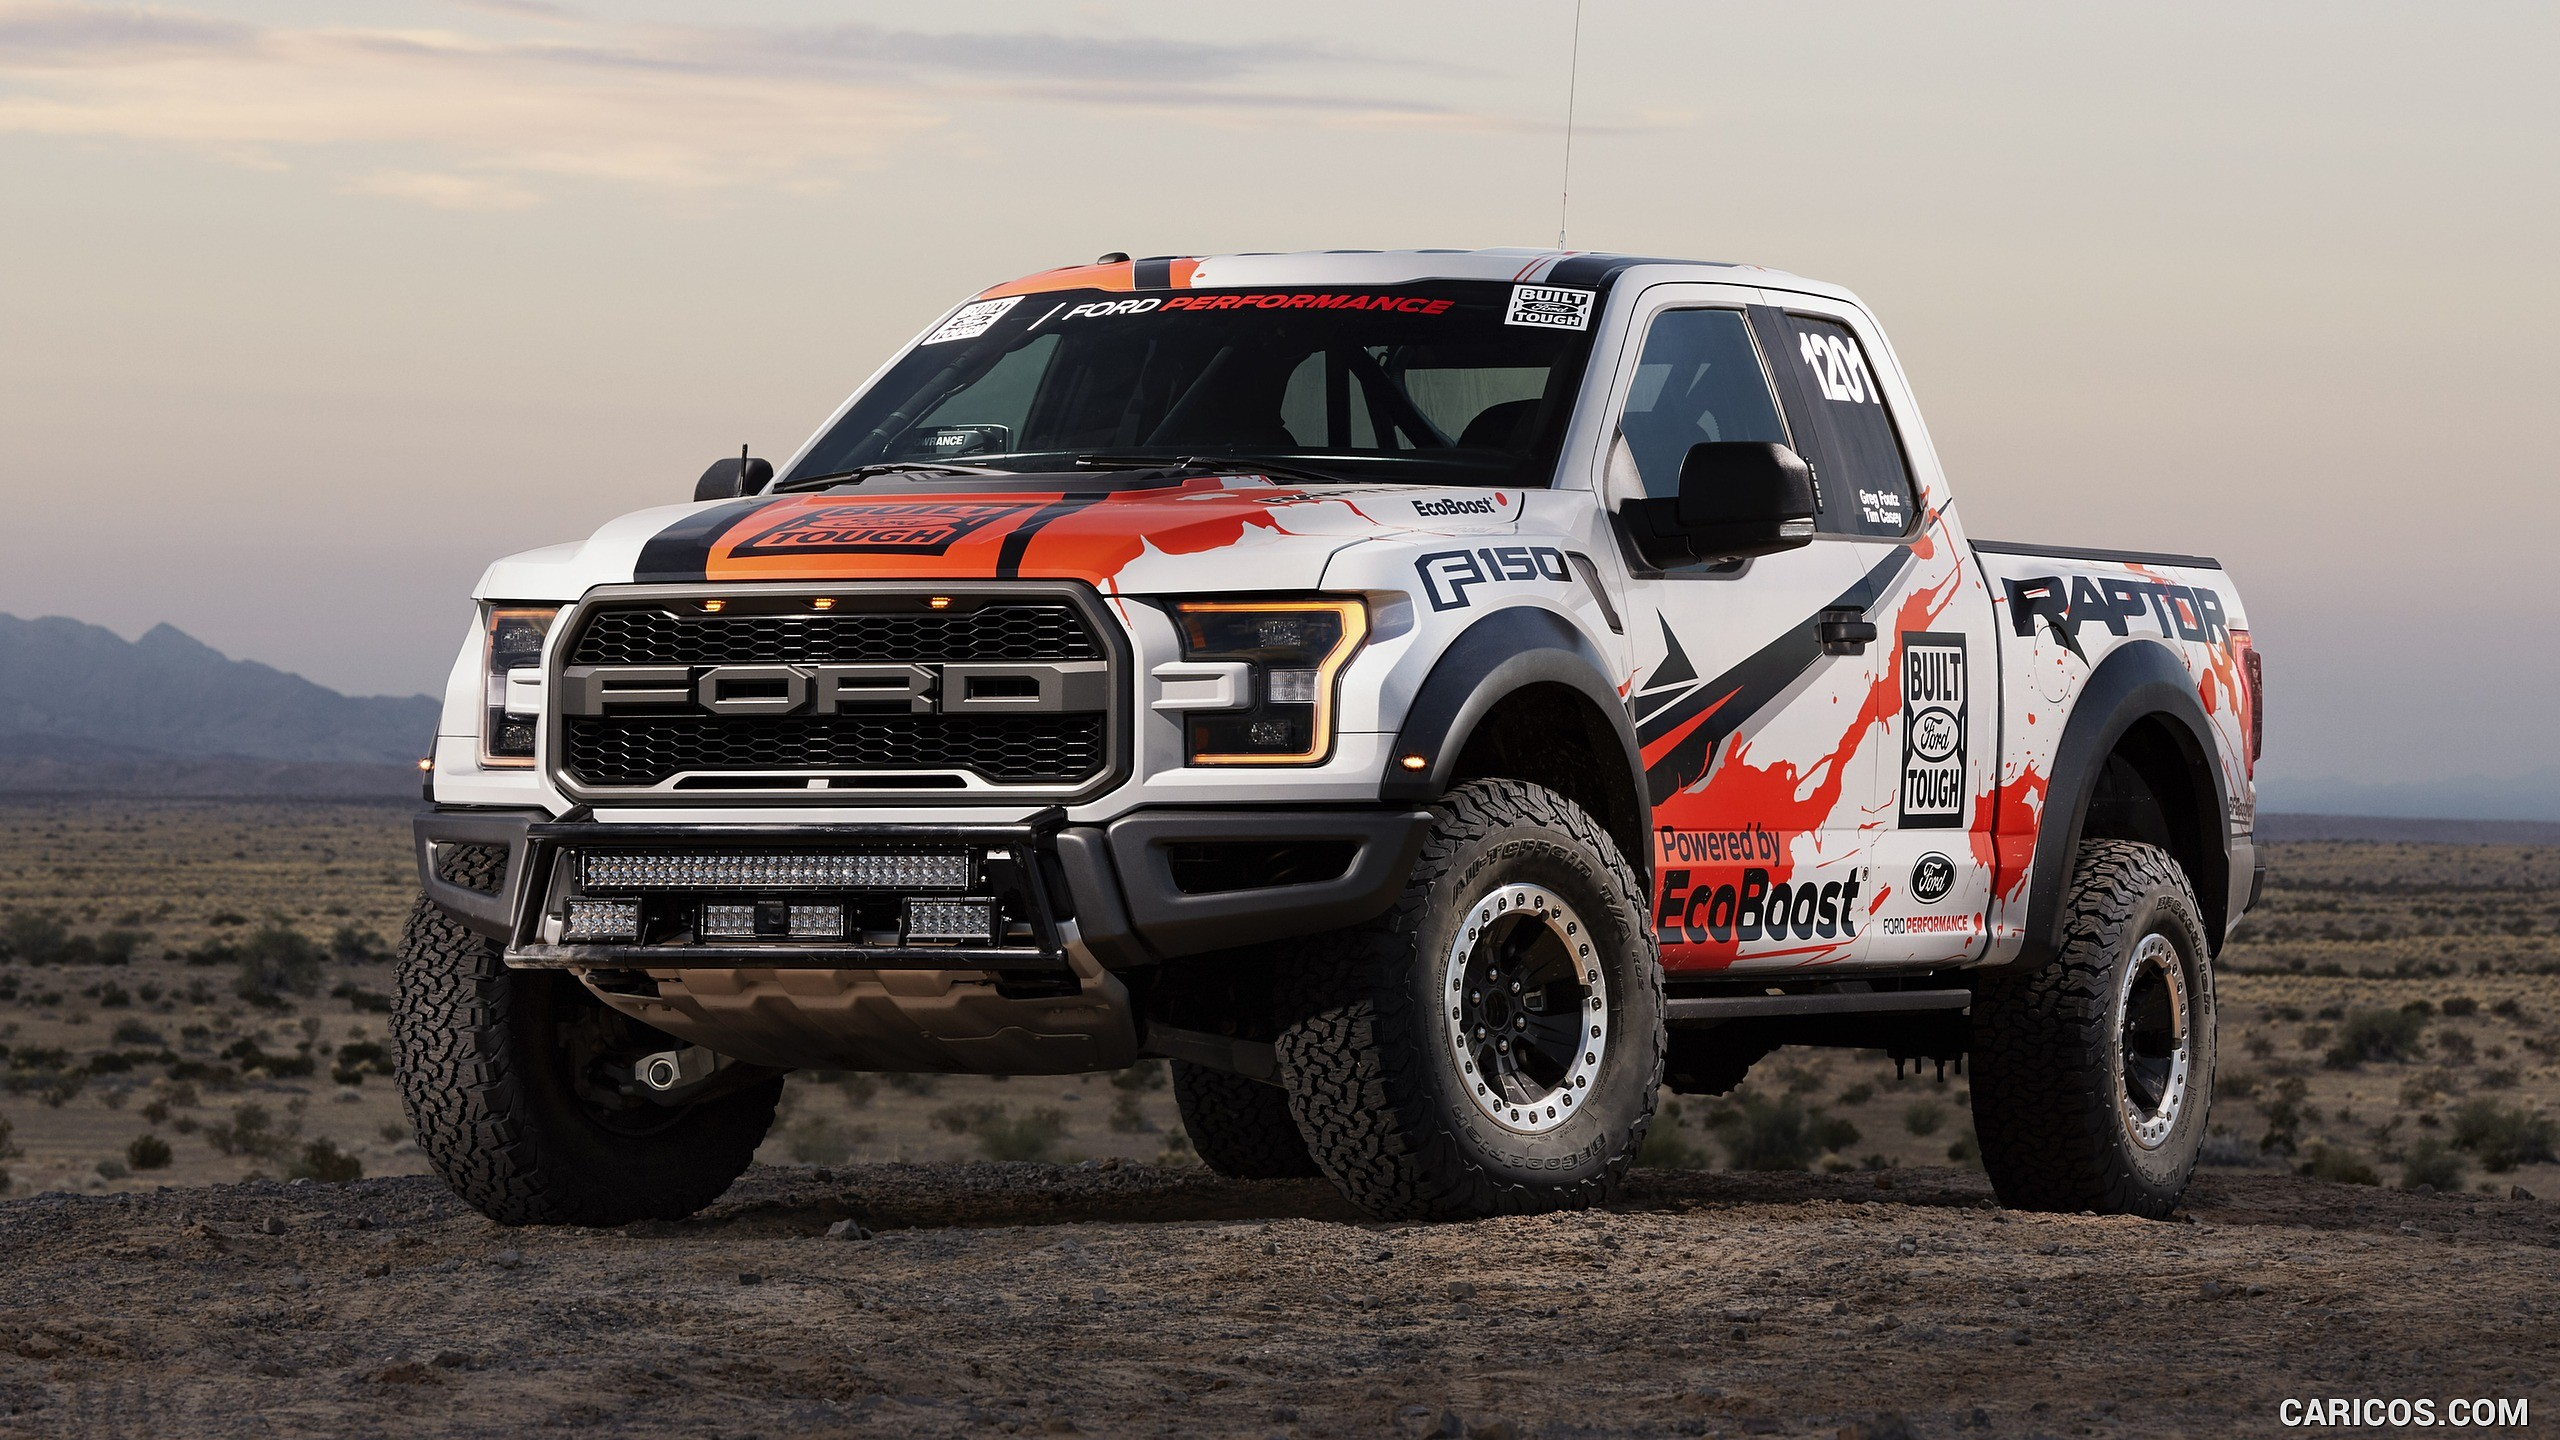 2560x1440 Ford F-150 Raptor HD Wallpaper | Background Image |  | ID:820691 -  Wallpaper Abyss